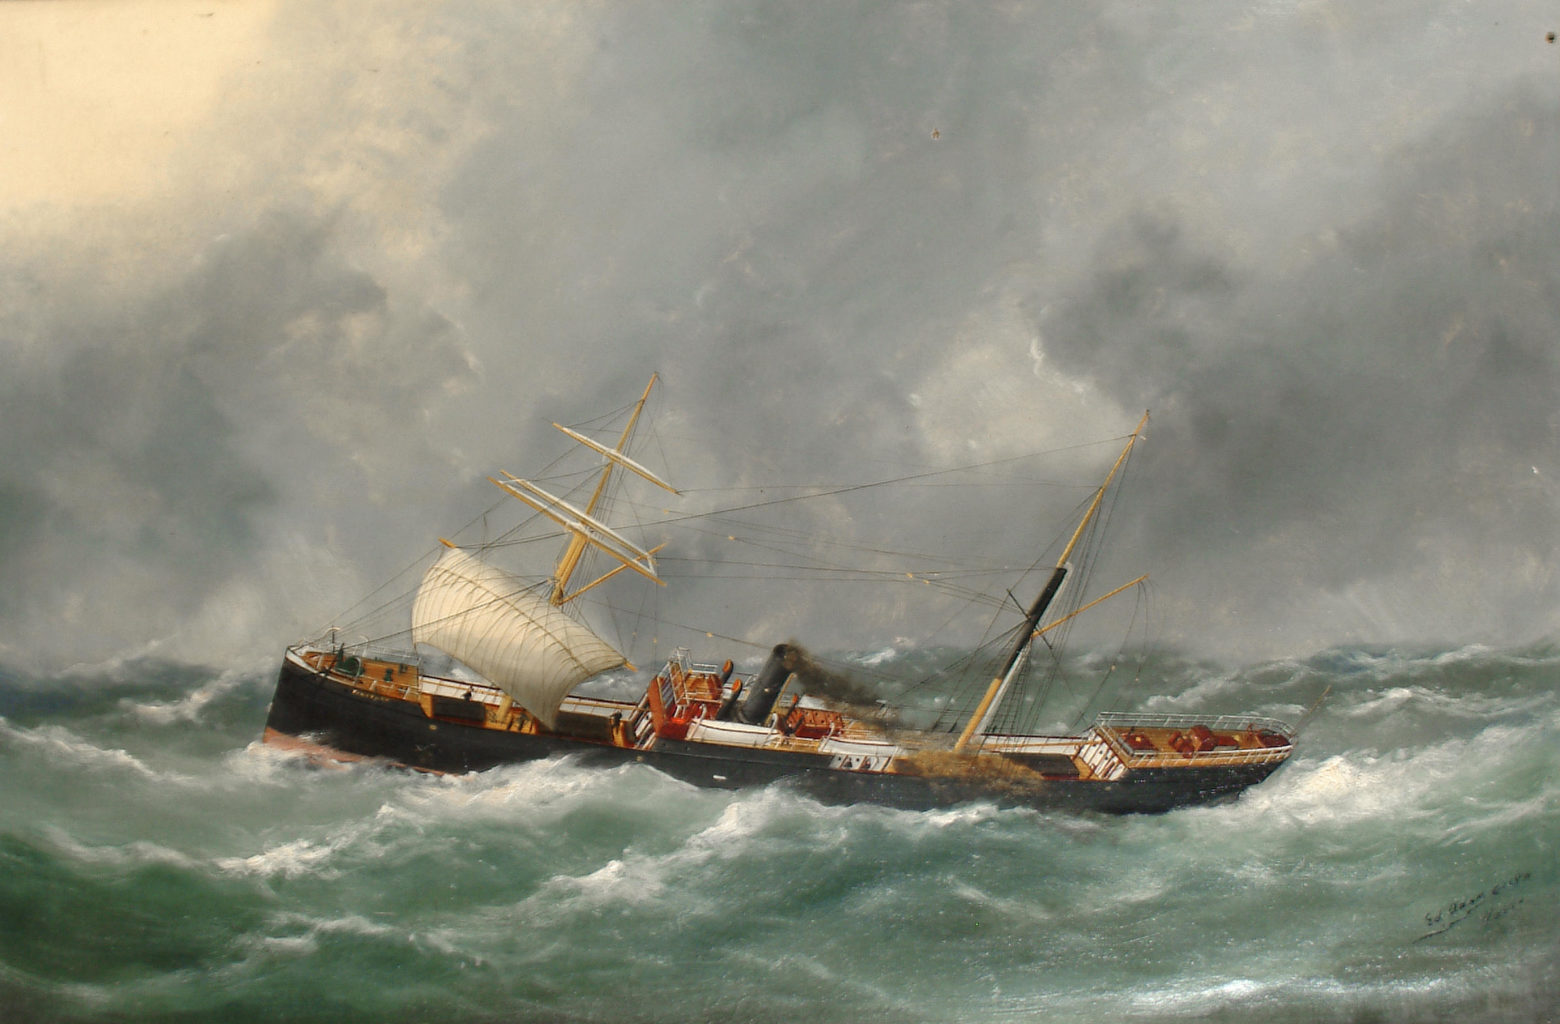 Sailing ship in a stormy ocean